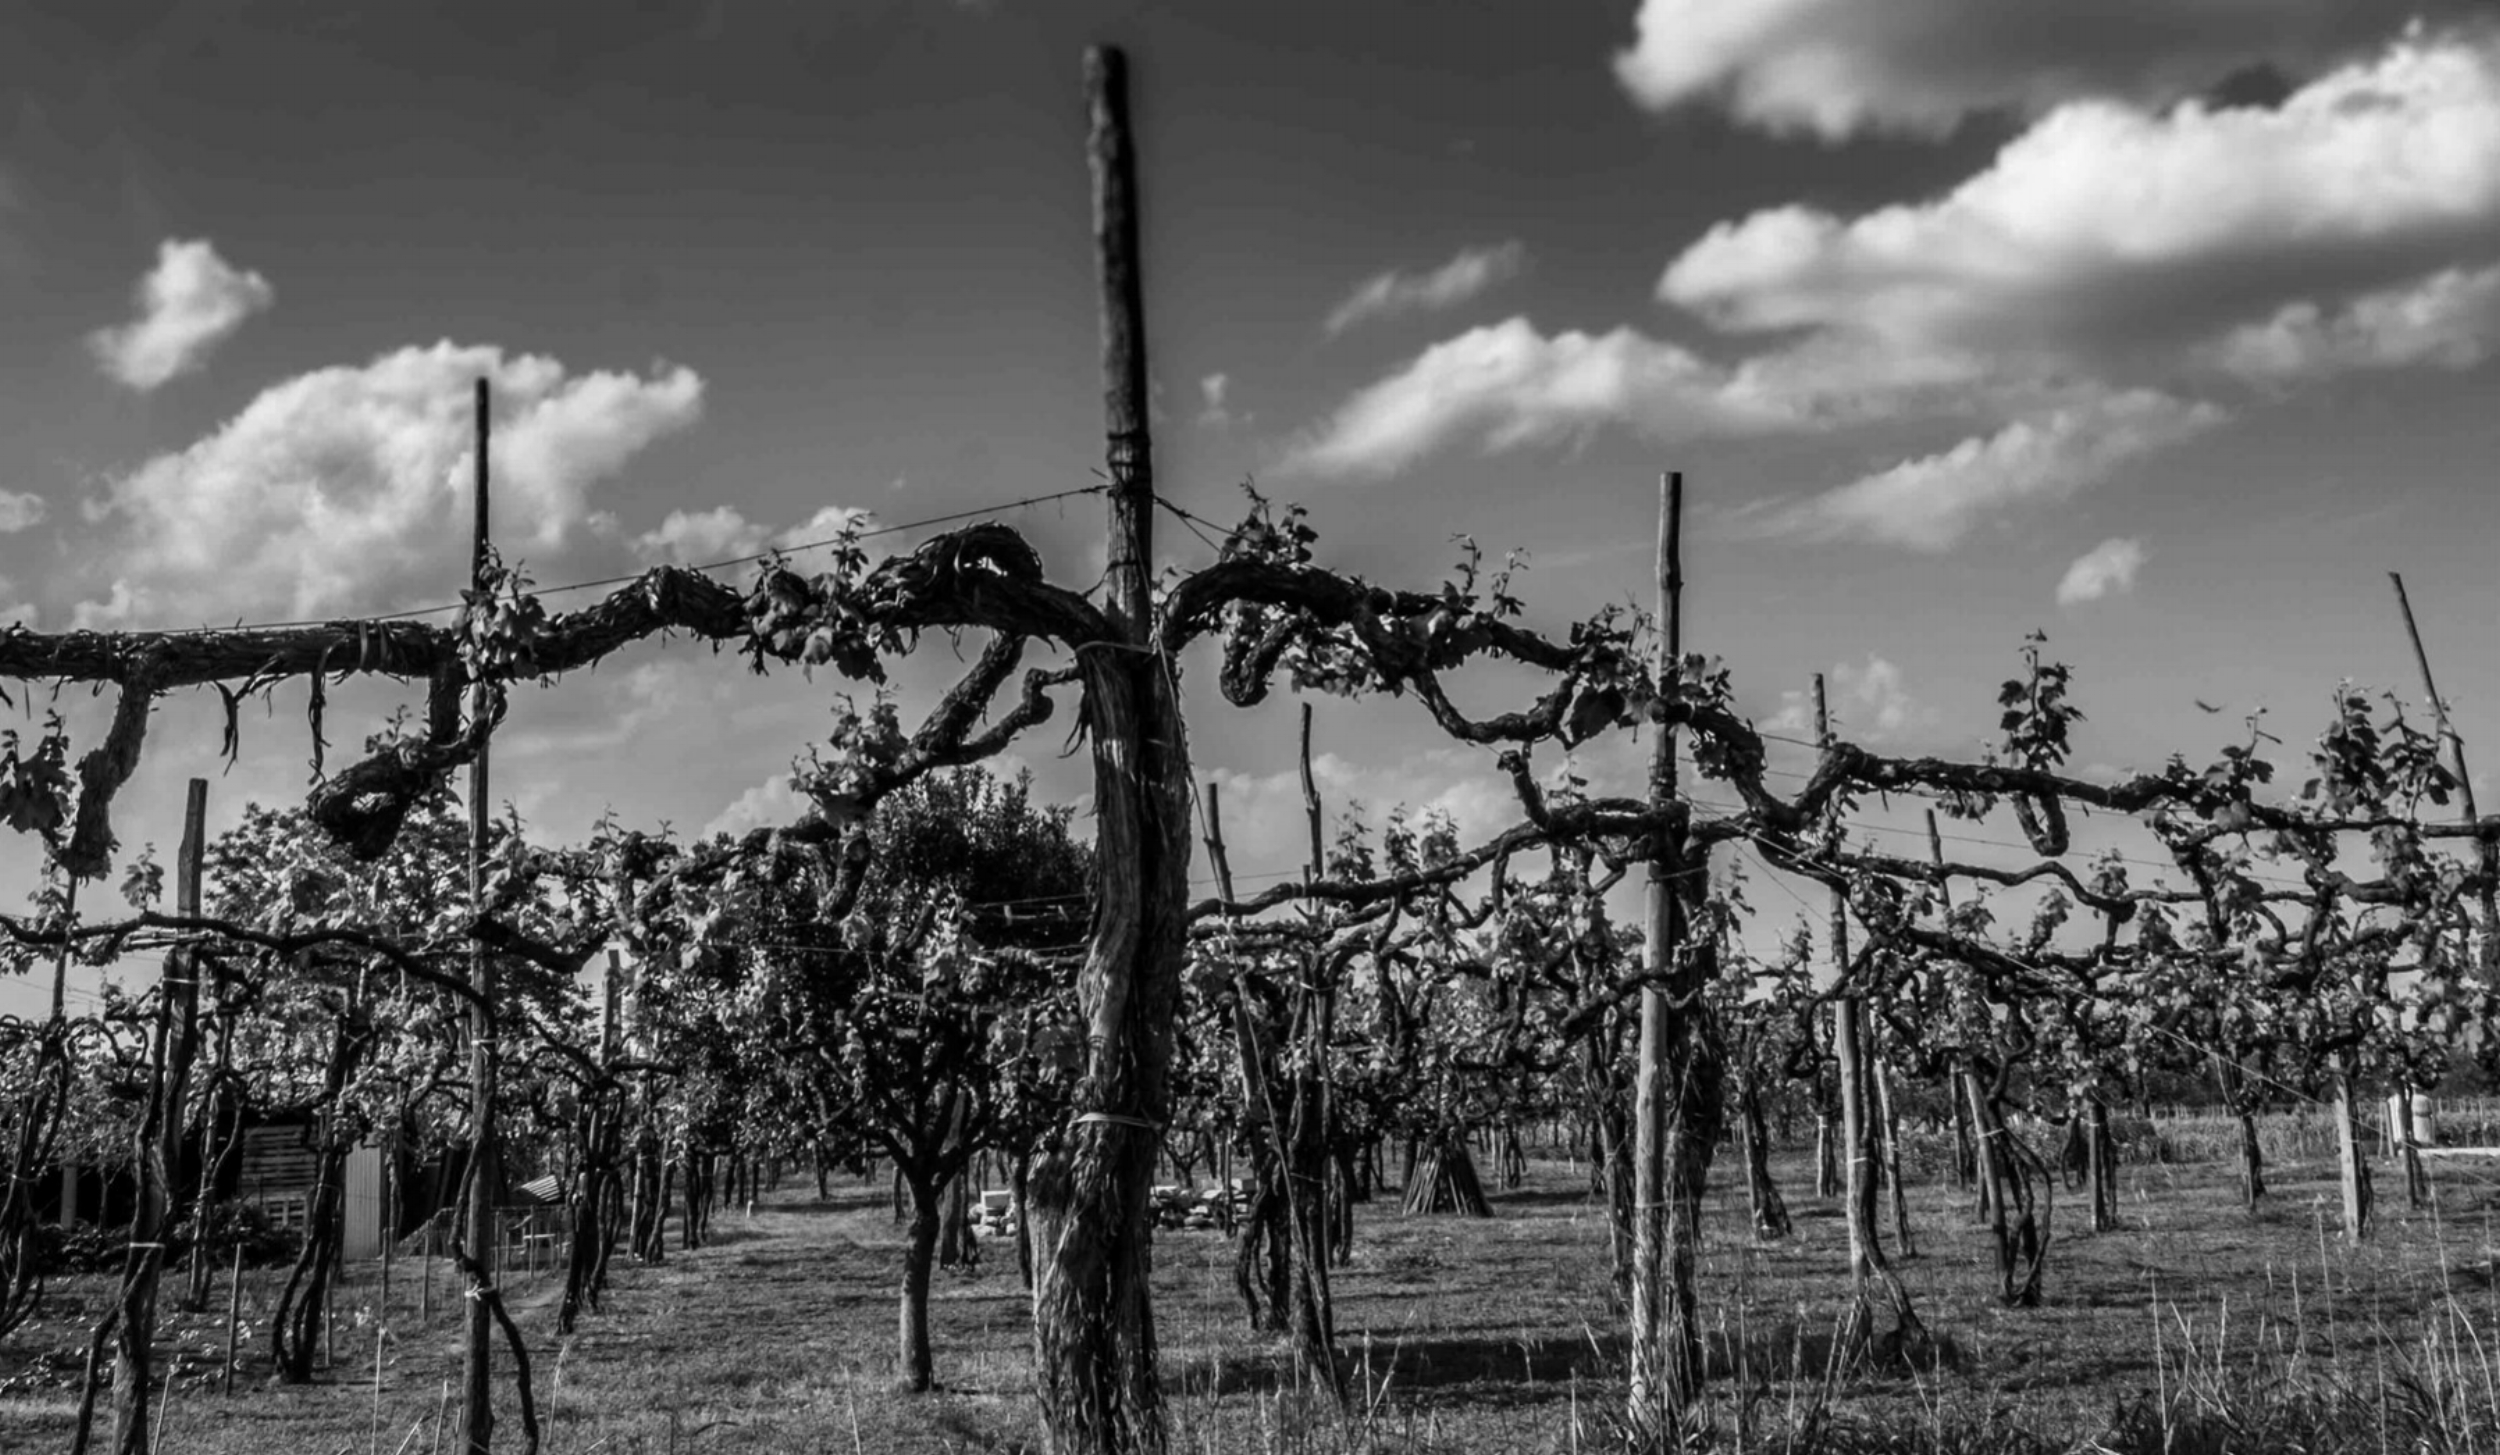 Ancient aglianico vine, Taurasi |  ©John Szabo (published by Jacqui Small)